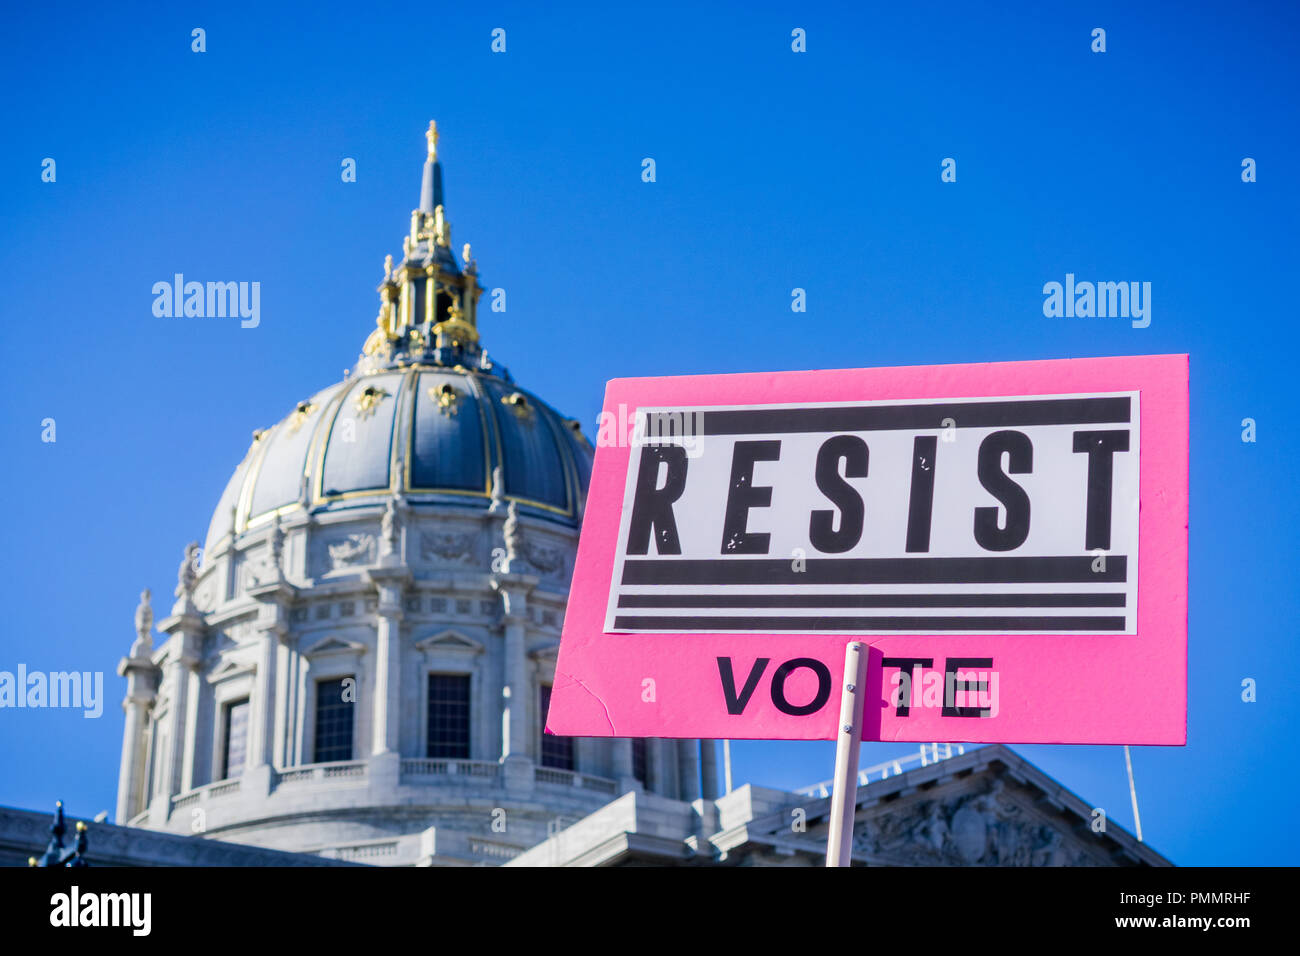 'Resist Vote' sign raised at the Women's March rally, Civic Center Plaza, San Francisco, California; the City Hall building in the background; - Stock Image